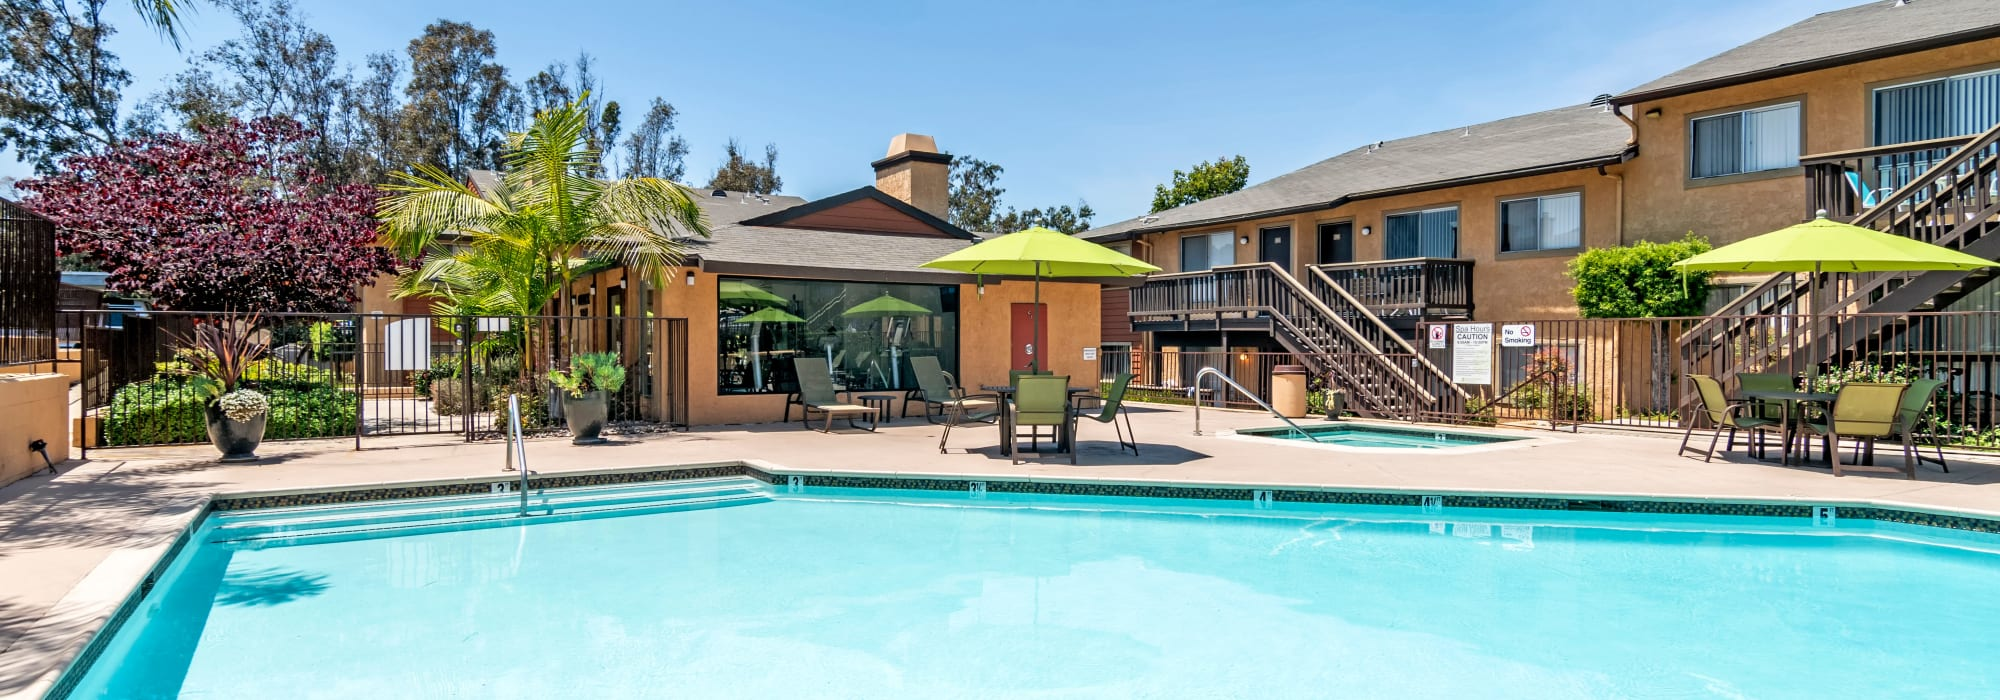 Contact us at Hillside Terrace Apartments in Lemon Grove, California